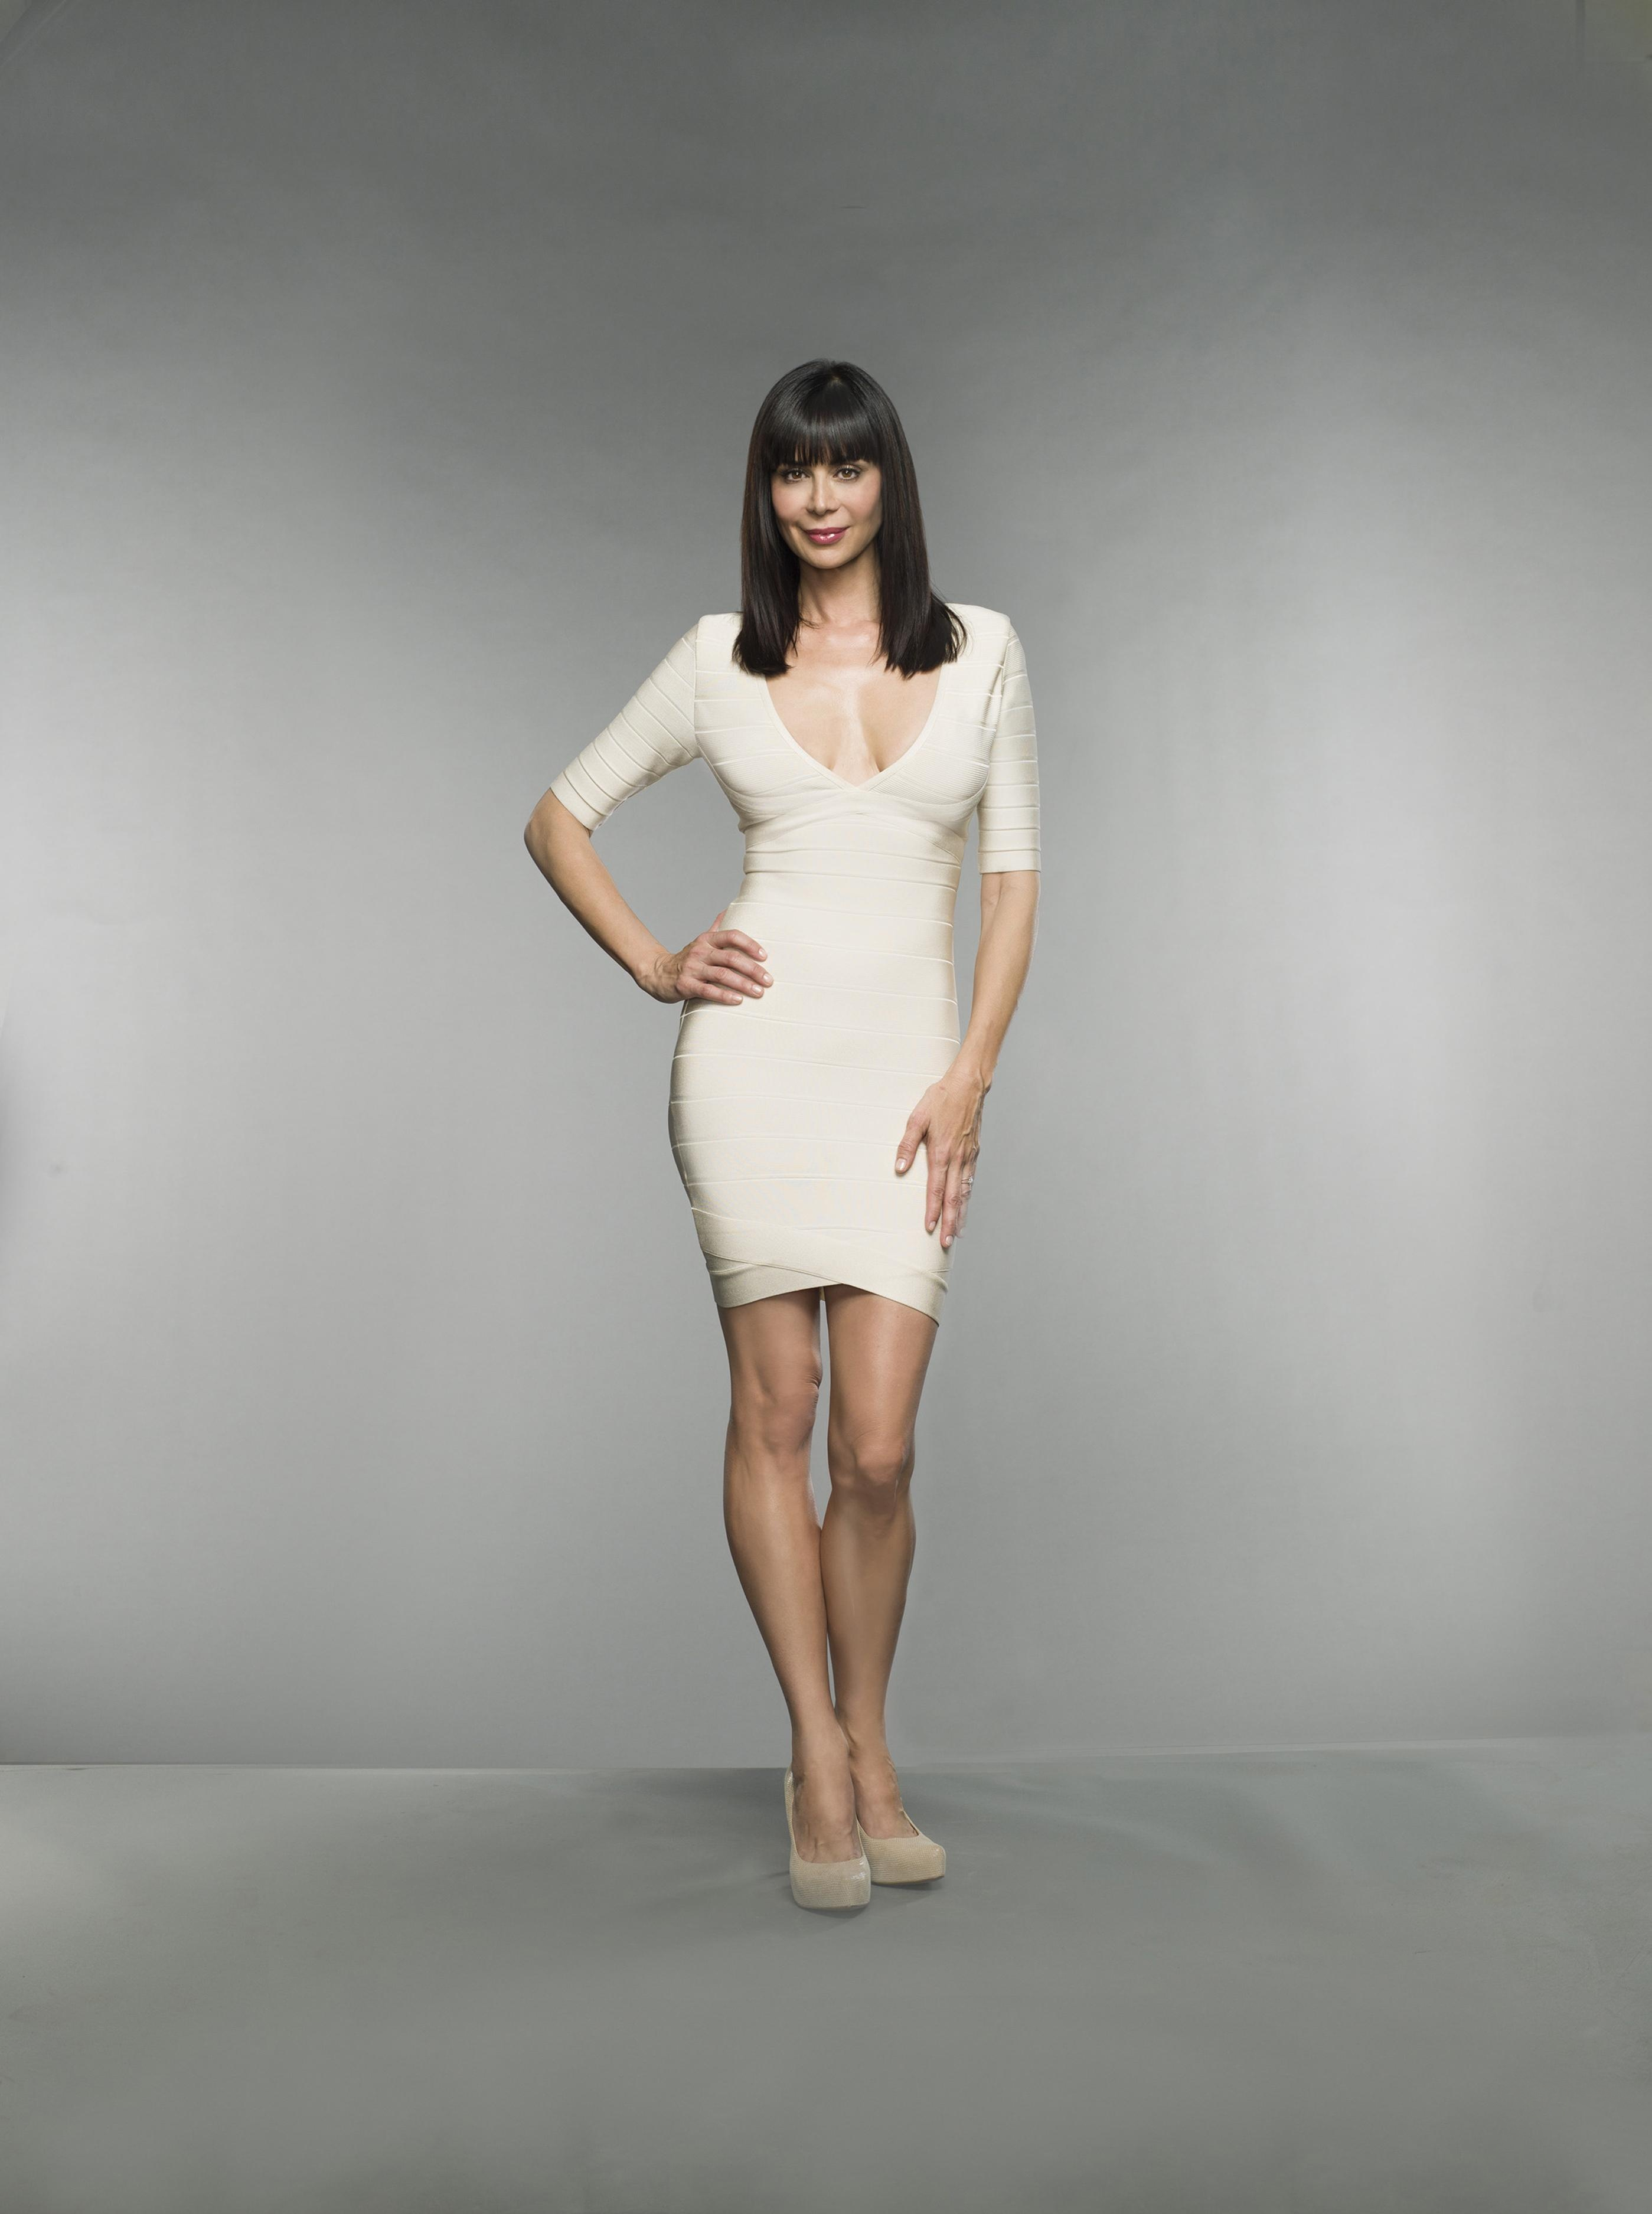 Catherine Bell - Army Wives Season 7 Promos